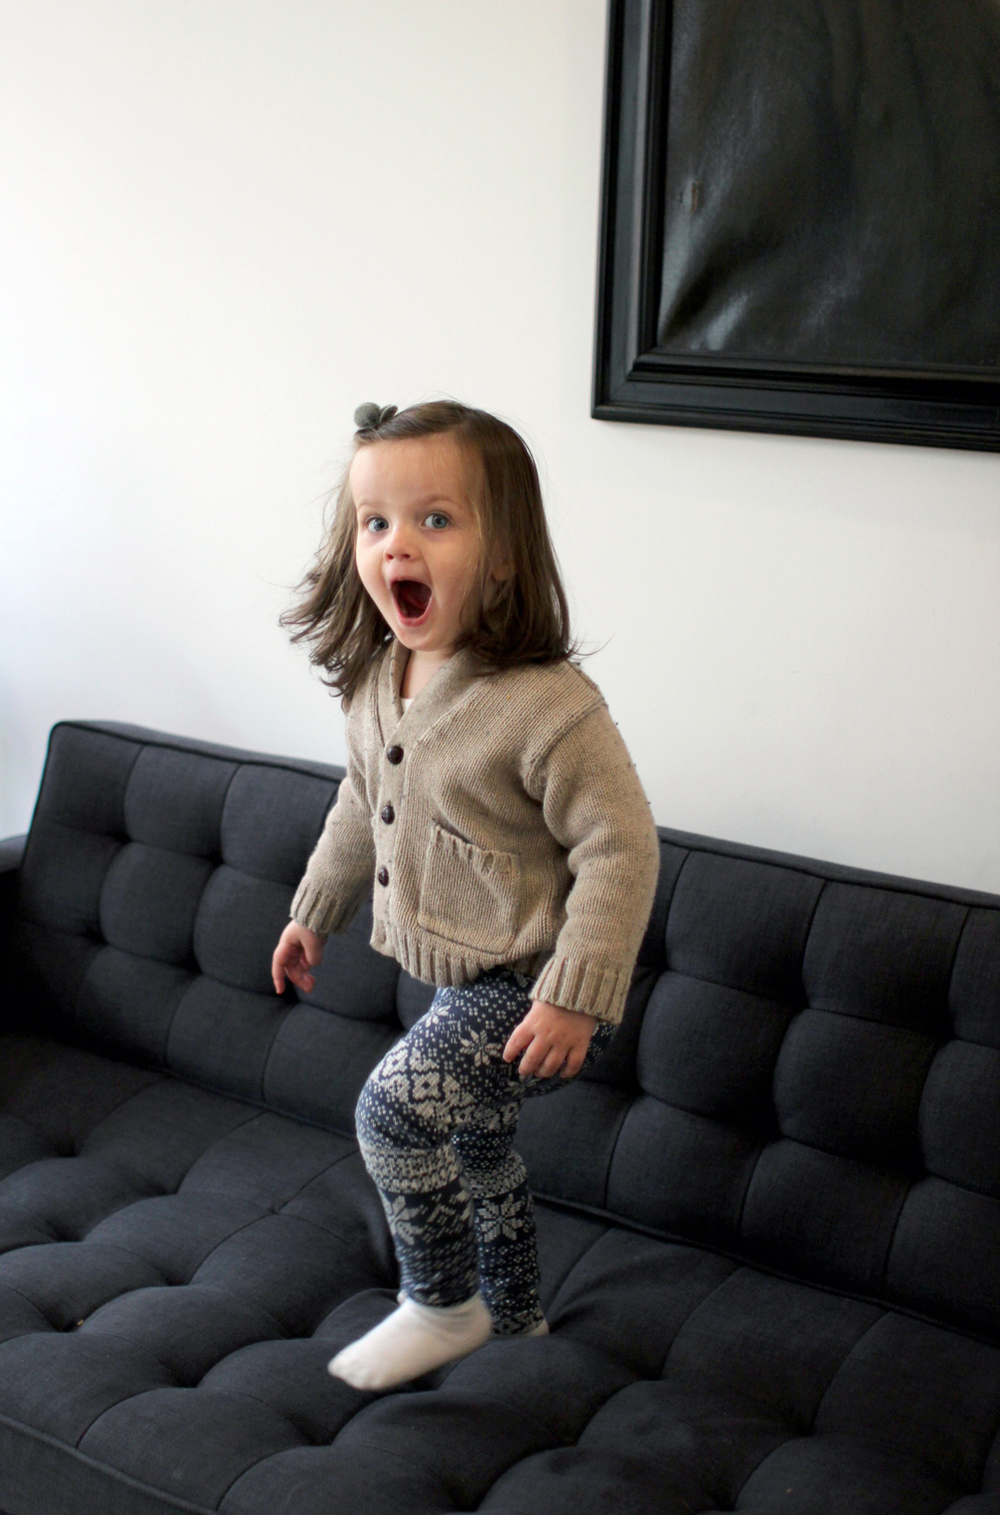 It's sad when it's late April and you're still cooped up inside because the freezing winter temperatures haven't lifted. But we find ways to entertain ourselves inside. Jumping on the sofa, flying airplanes, and sometimes even climbing into the stroller and pretending we're going out for an adventure.